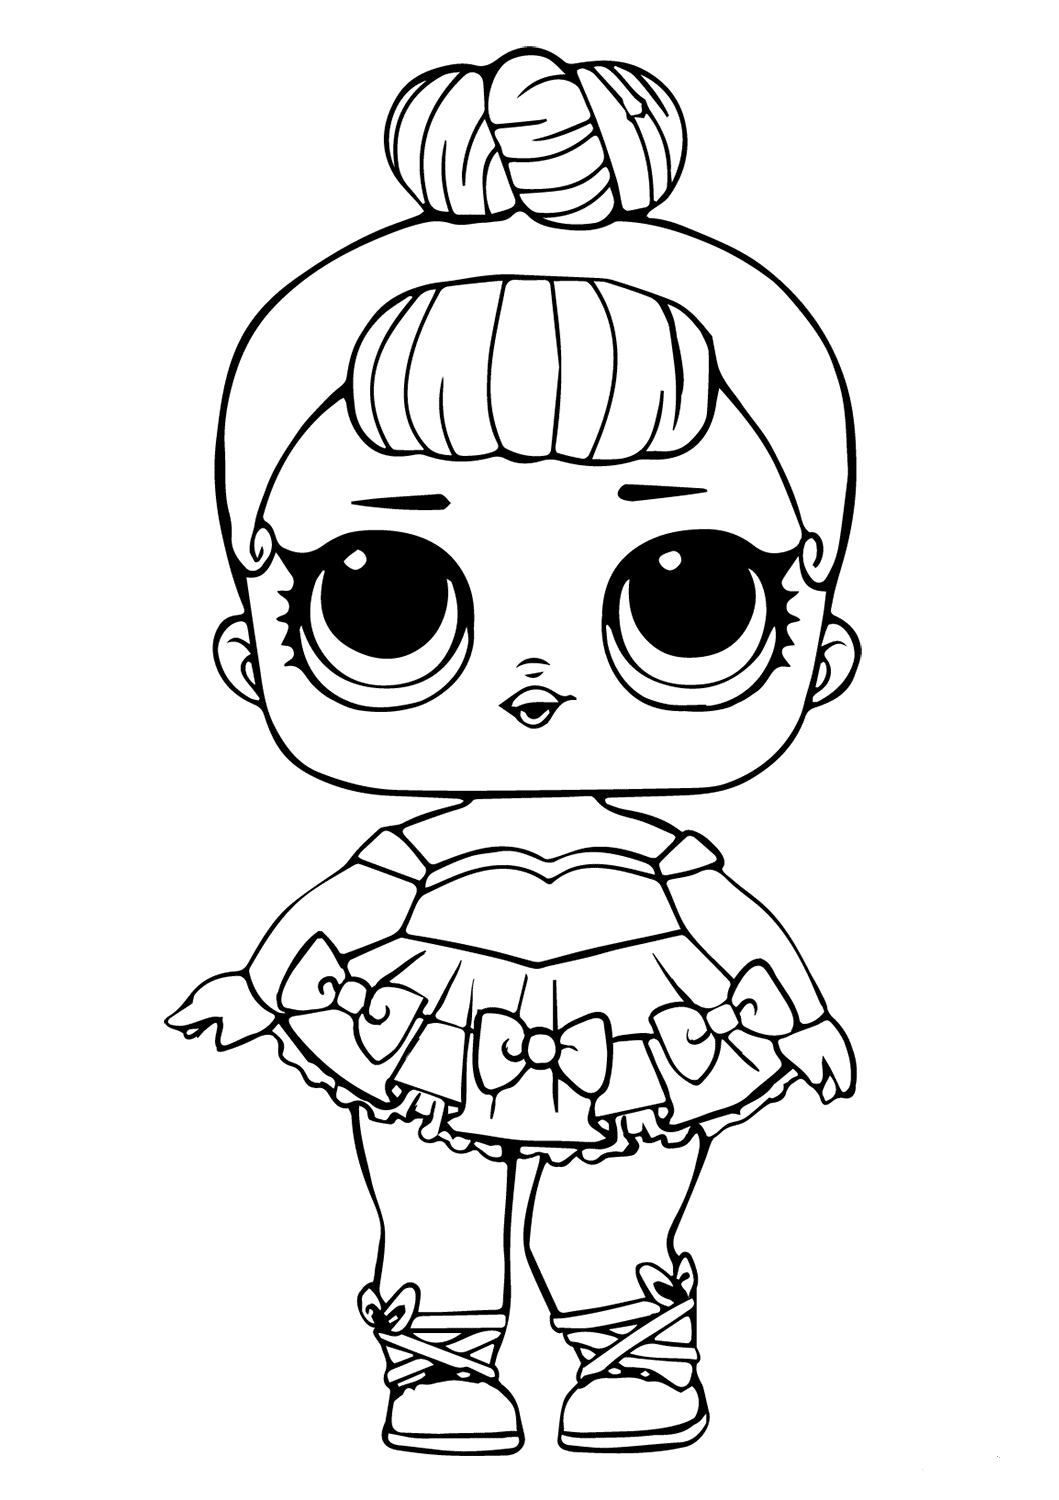 doll coloring sheets dolls coloring pages sheets doll coloring